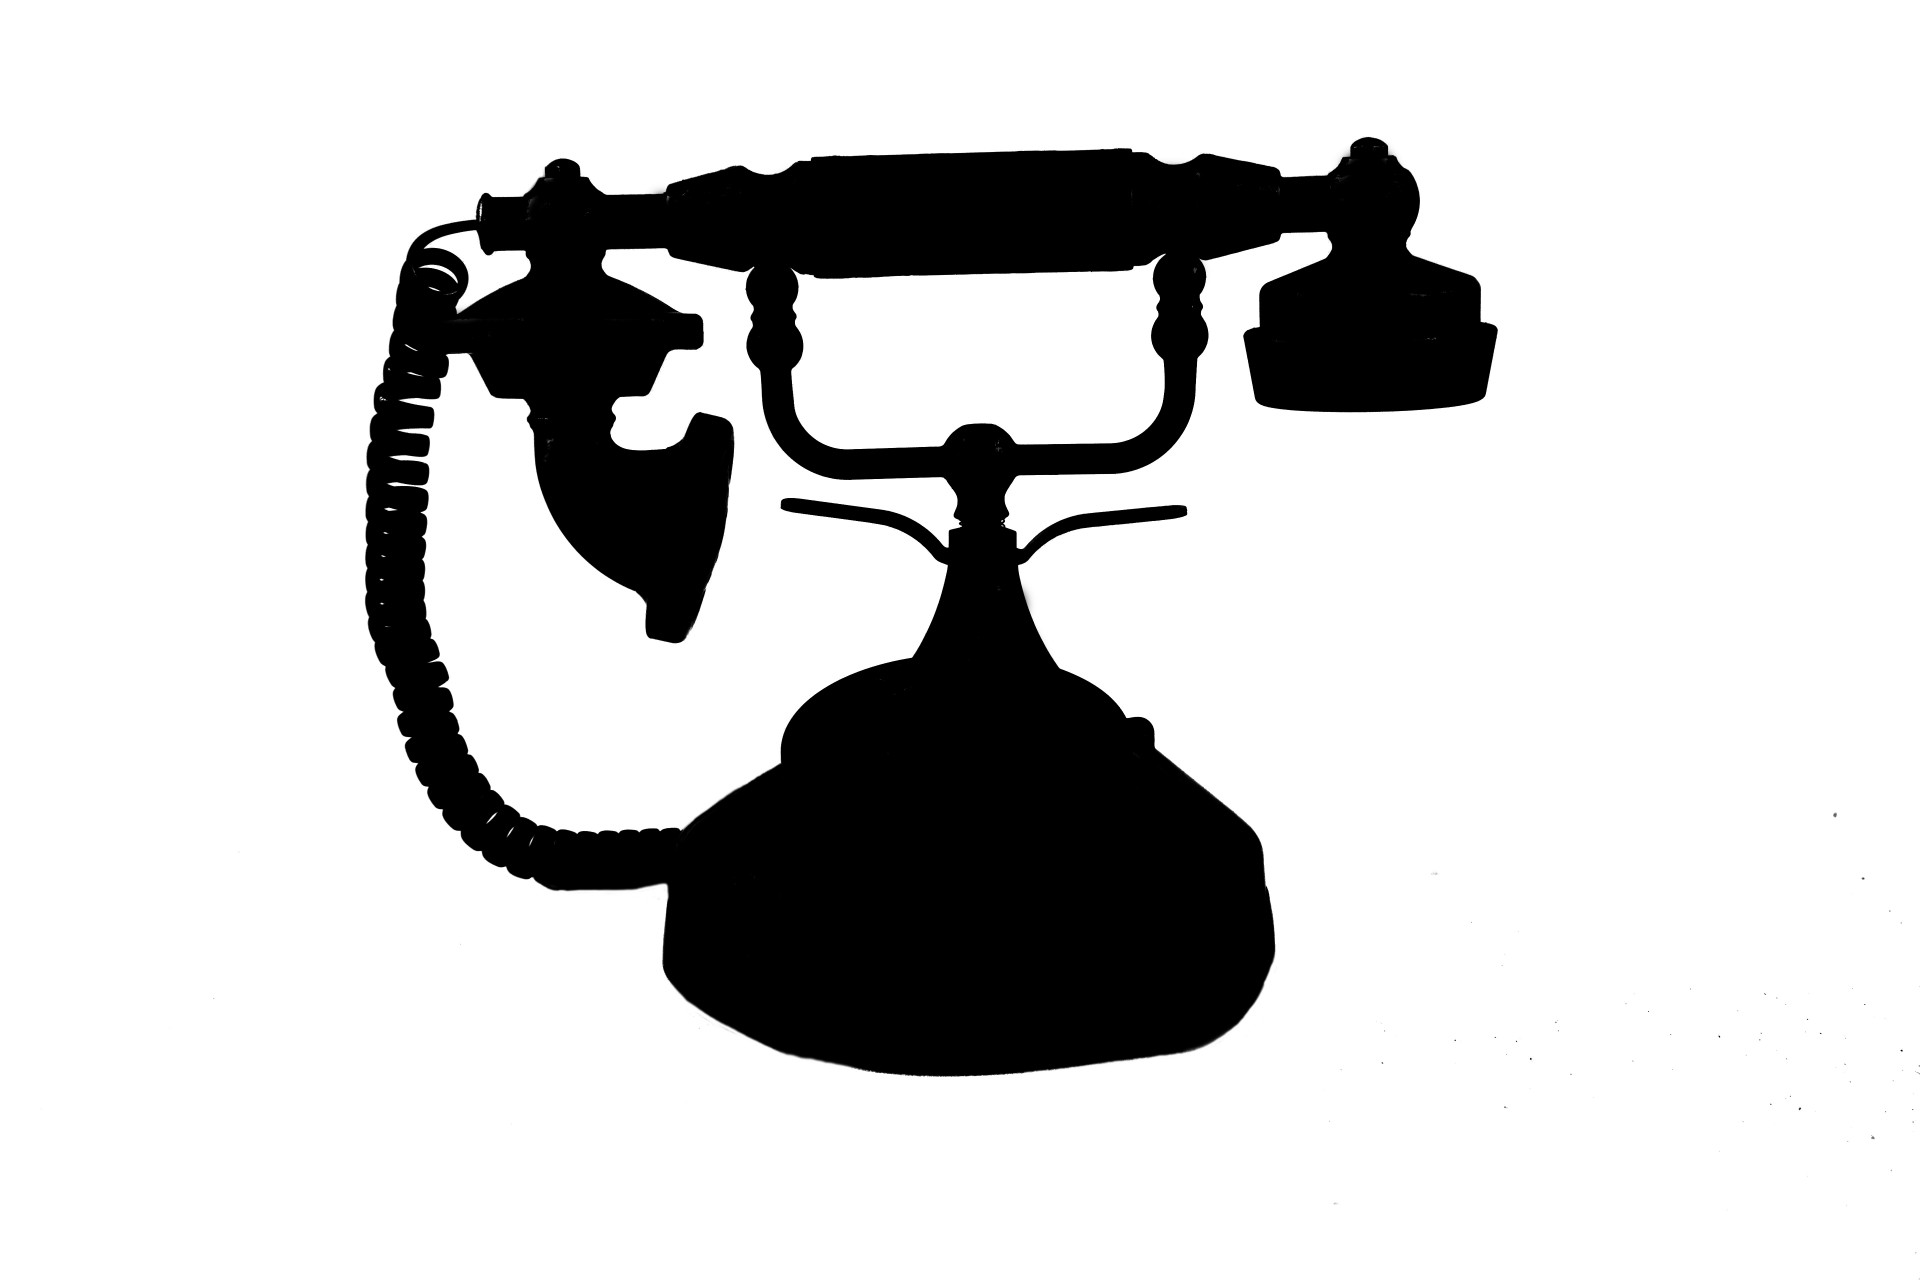 1920x1280 Silhouette Of Antique Telephone Free Stock Photo